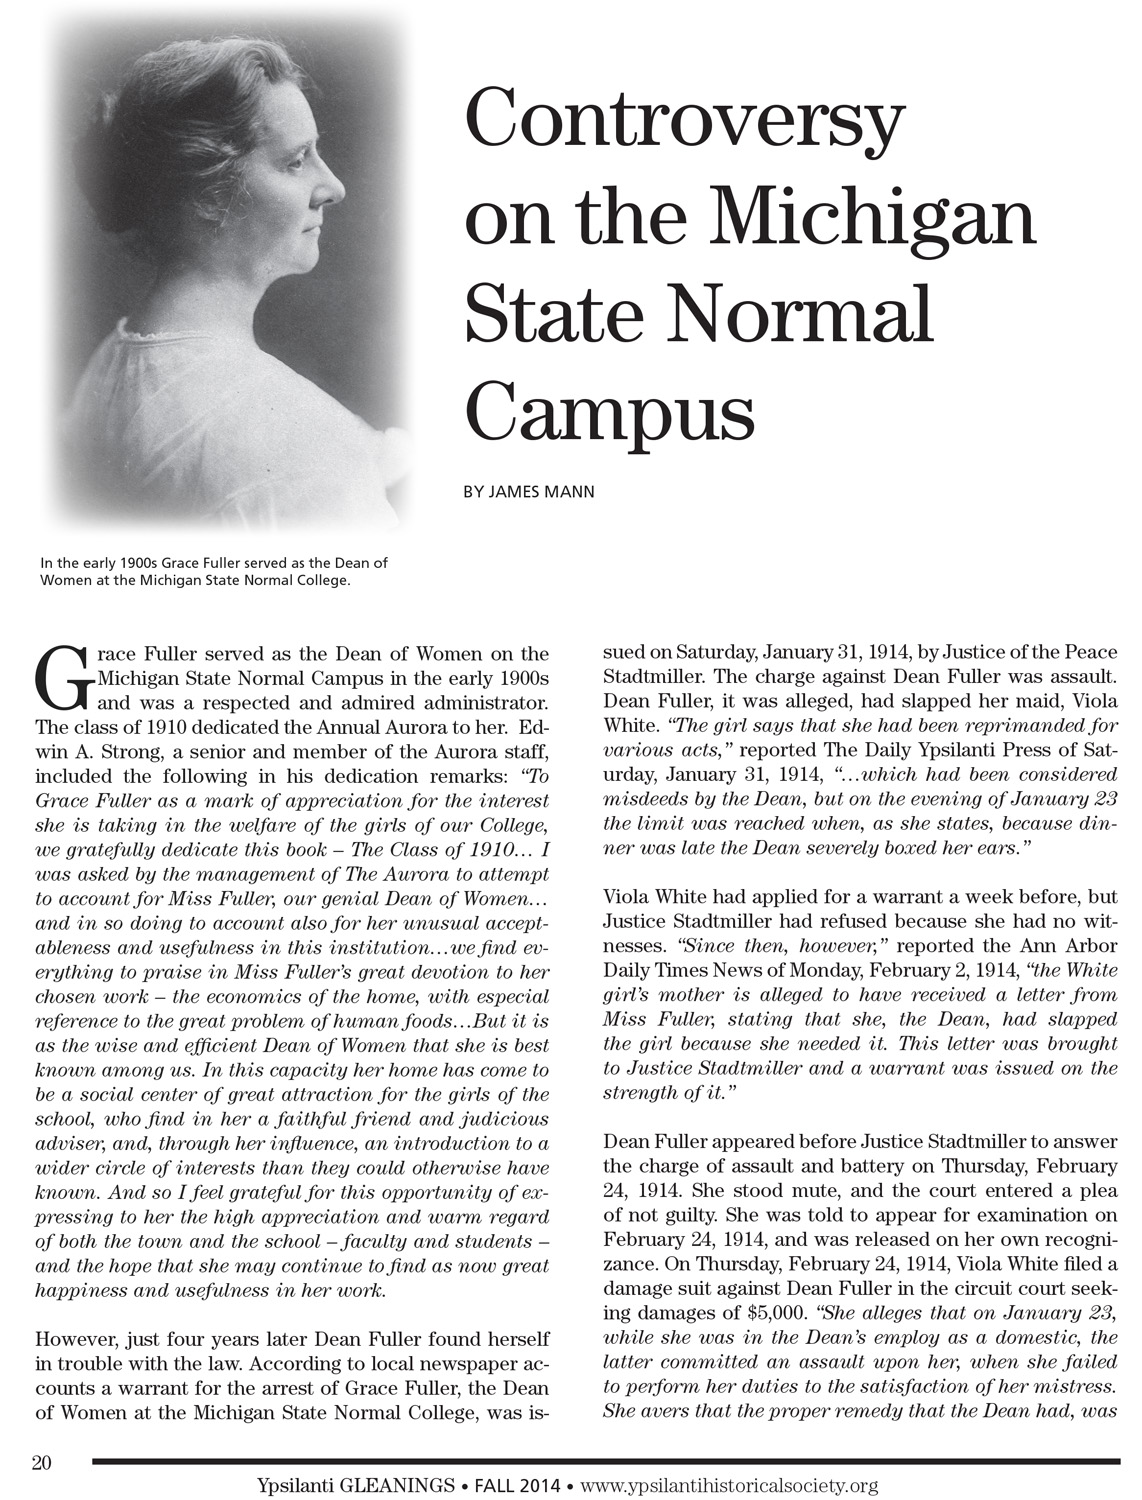 Controversy on the Michigan State Normal Campus image